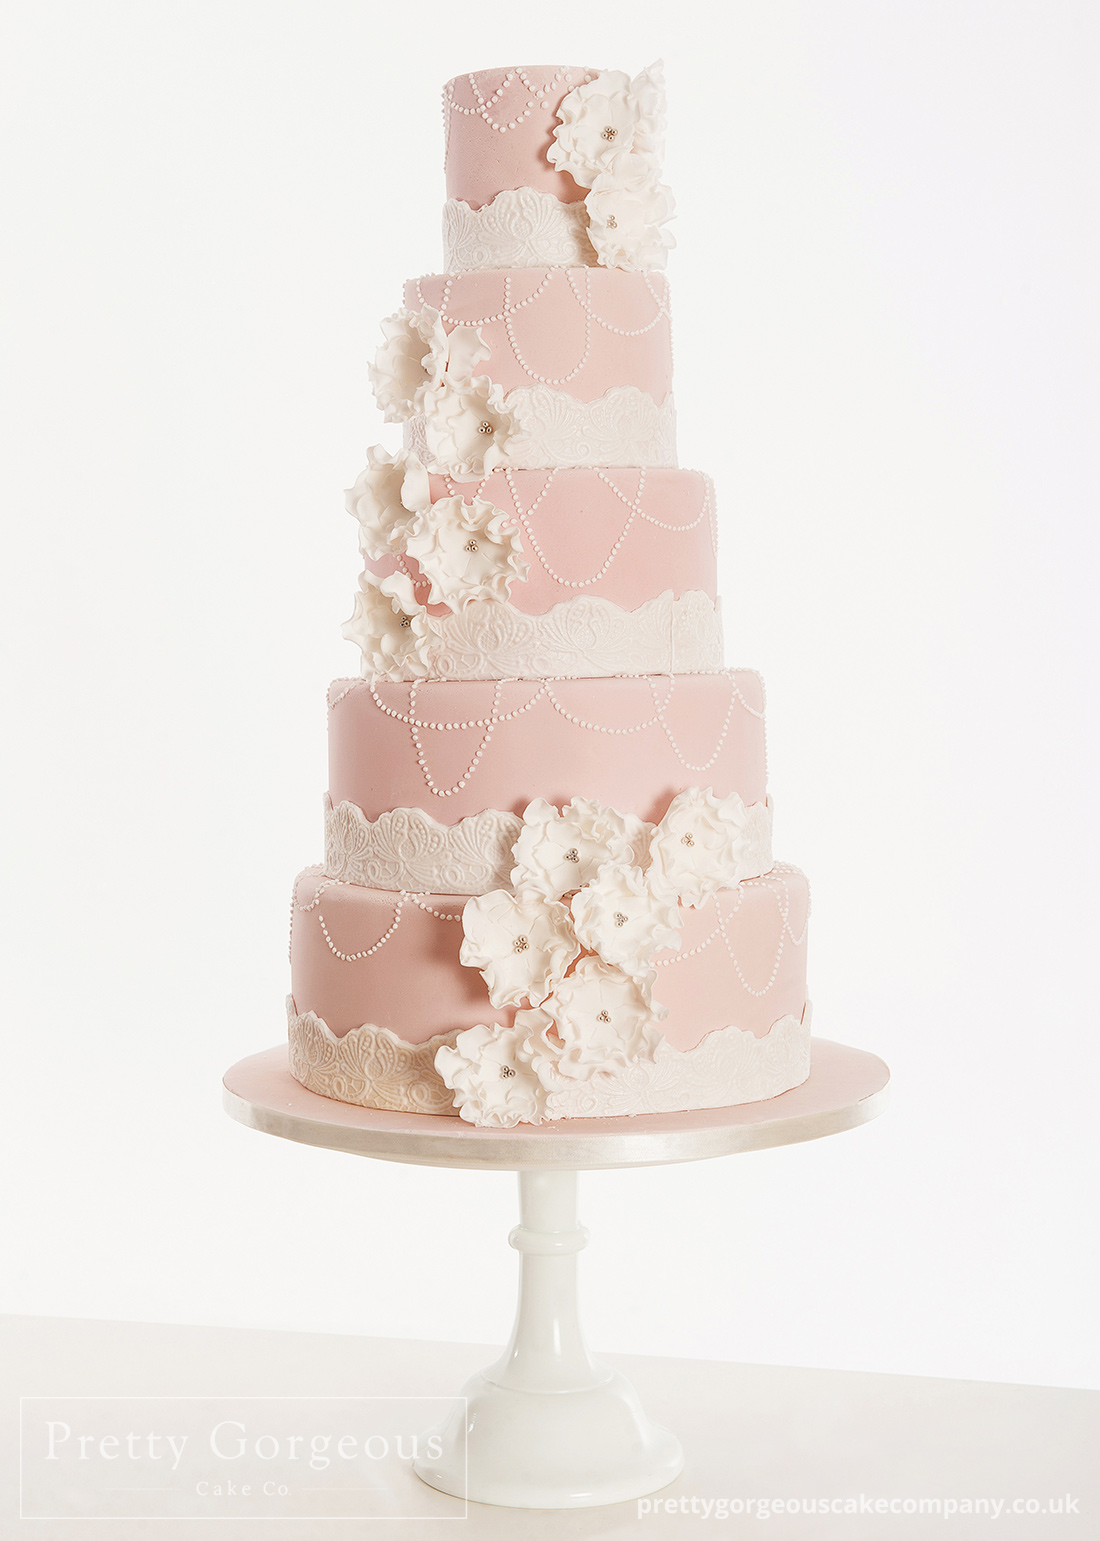 Five tier cake, pearls, frills, wedding cake